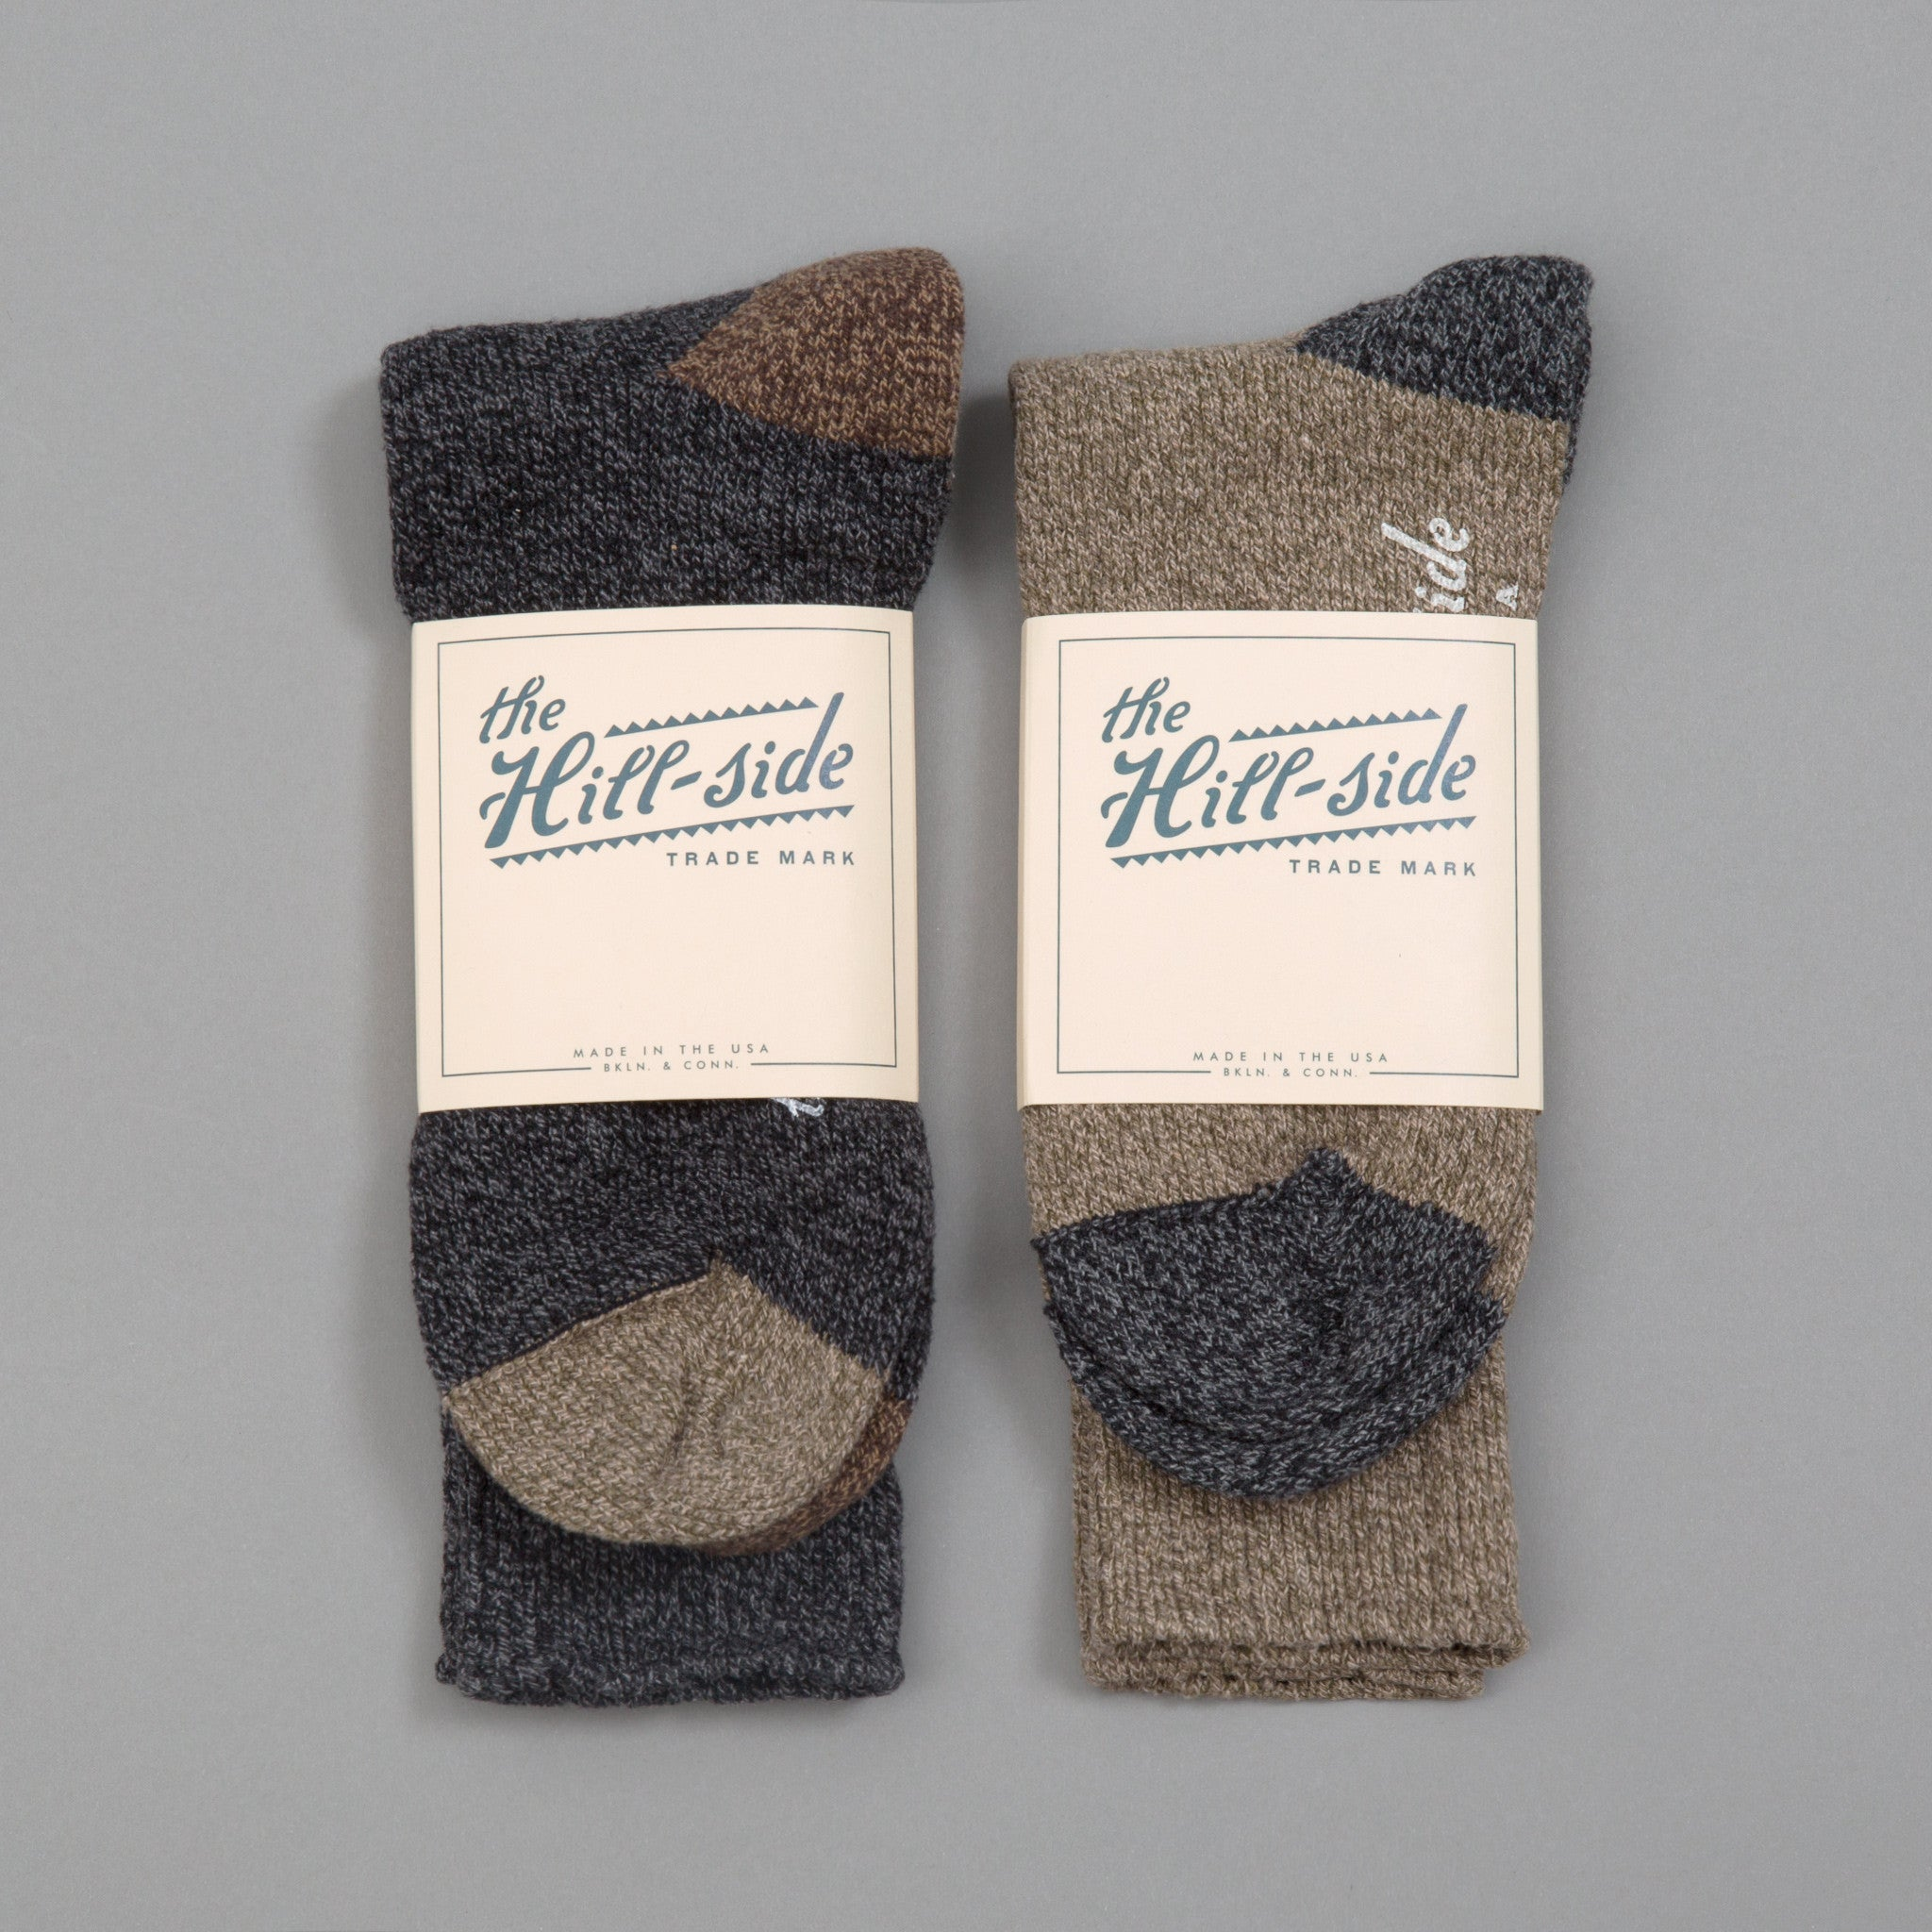 The Hill-Side - Mixed 2-Pack Socks, Charcoal and Olive - SX11-02 - image 1